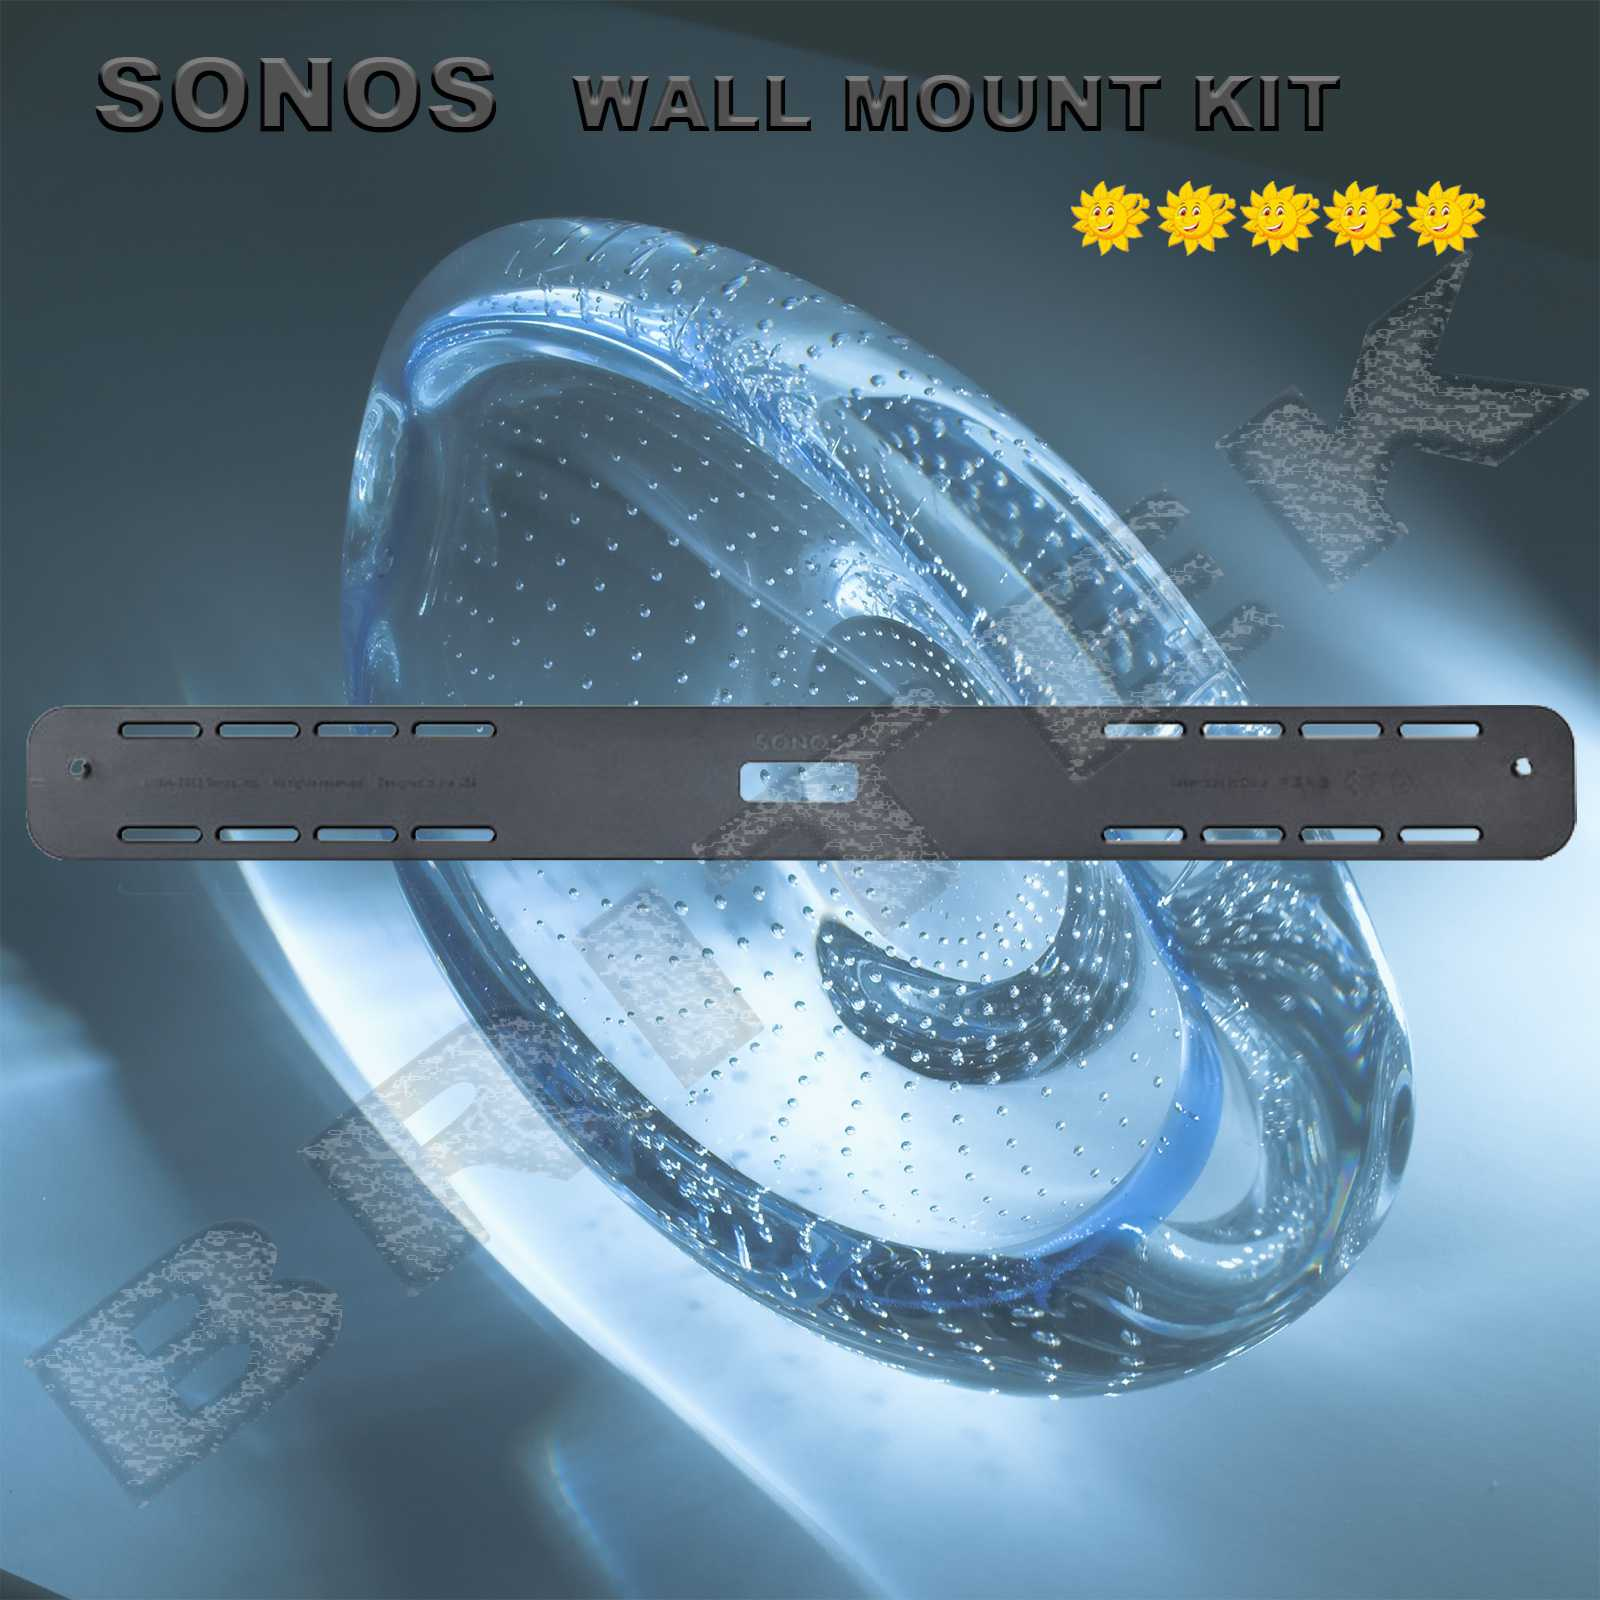 SONOS WALL MOUNT KIT